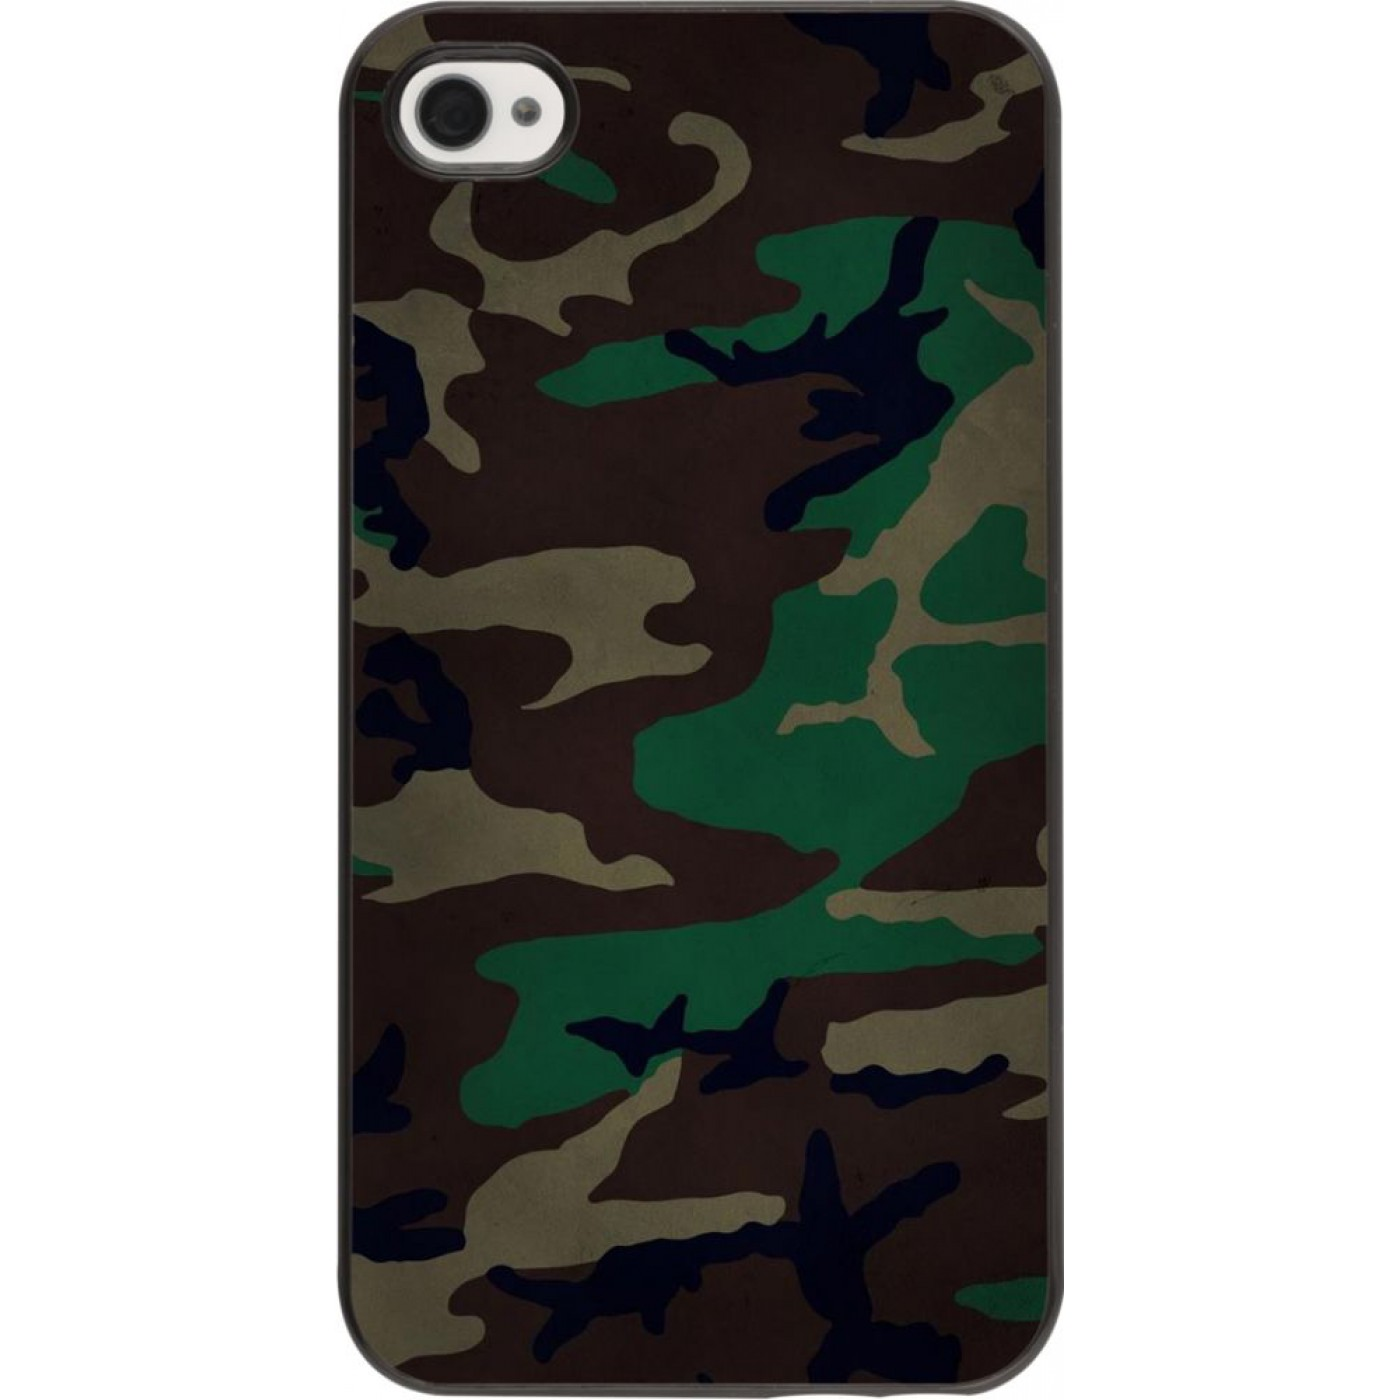 h lle iphone 4 4s camouflage 3. Black Bedroom Furniture Sets. Home Design Ideas